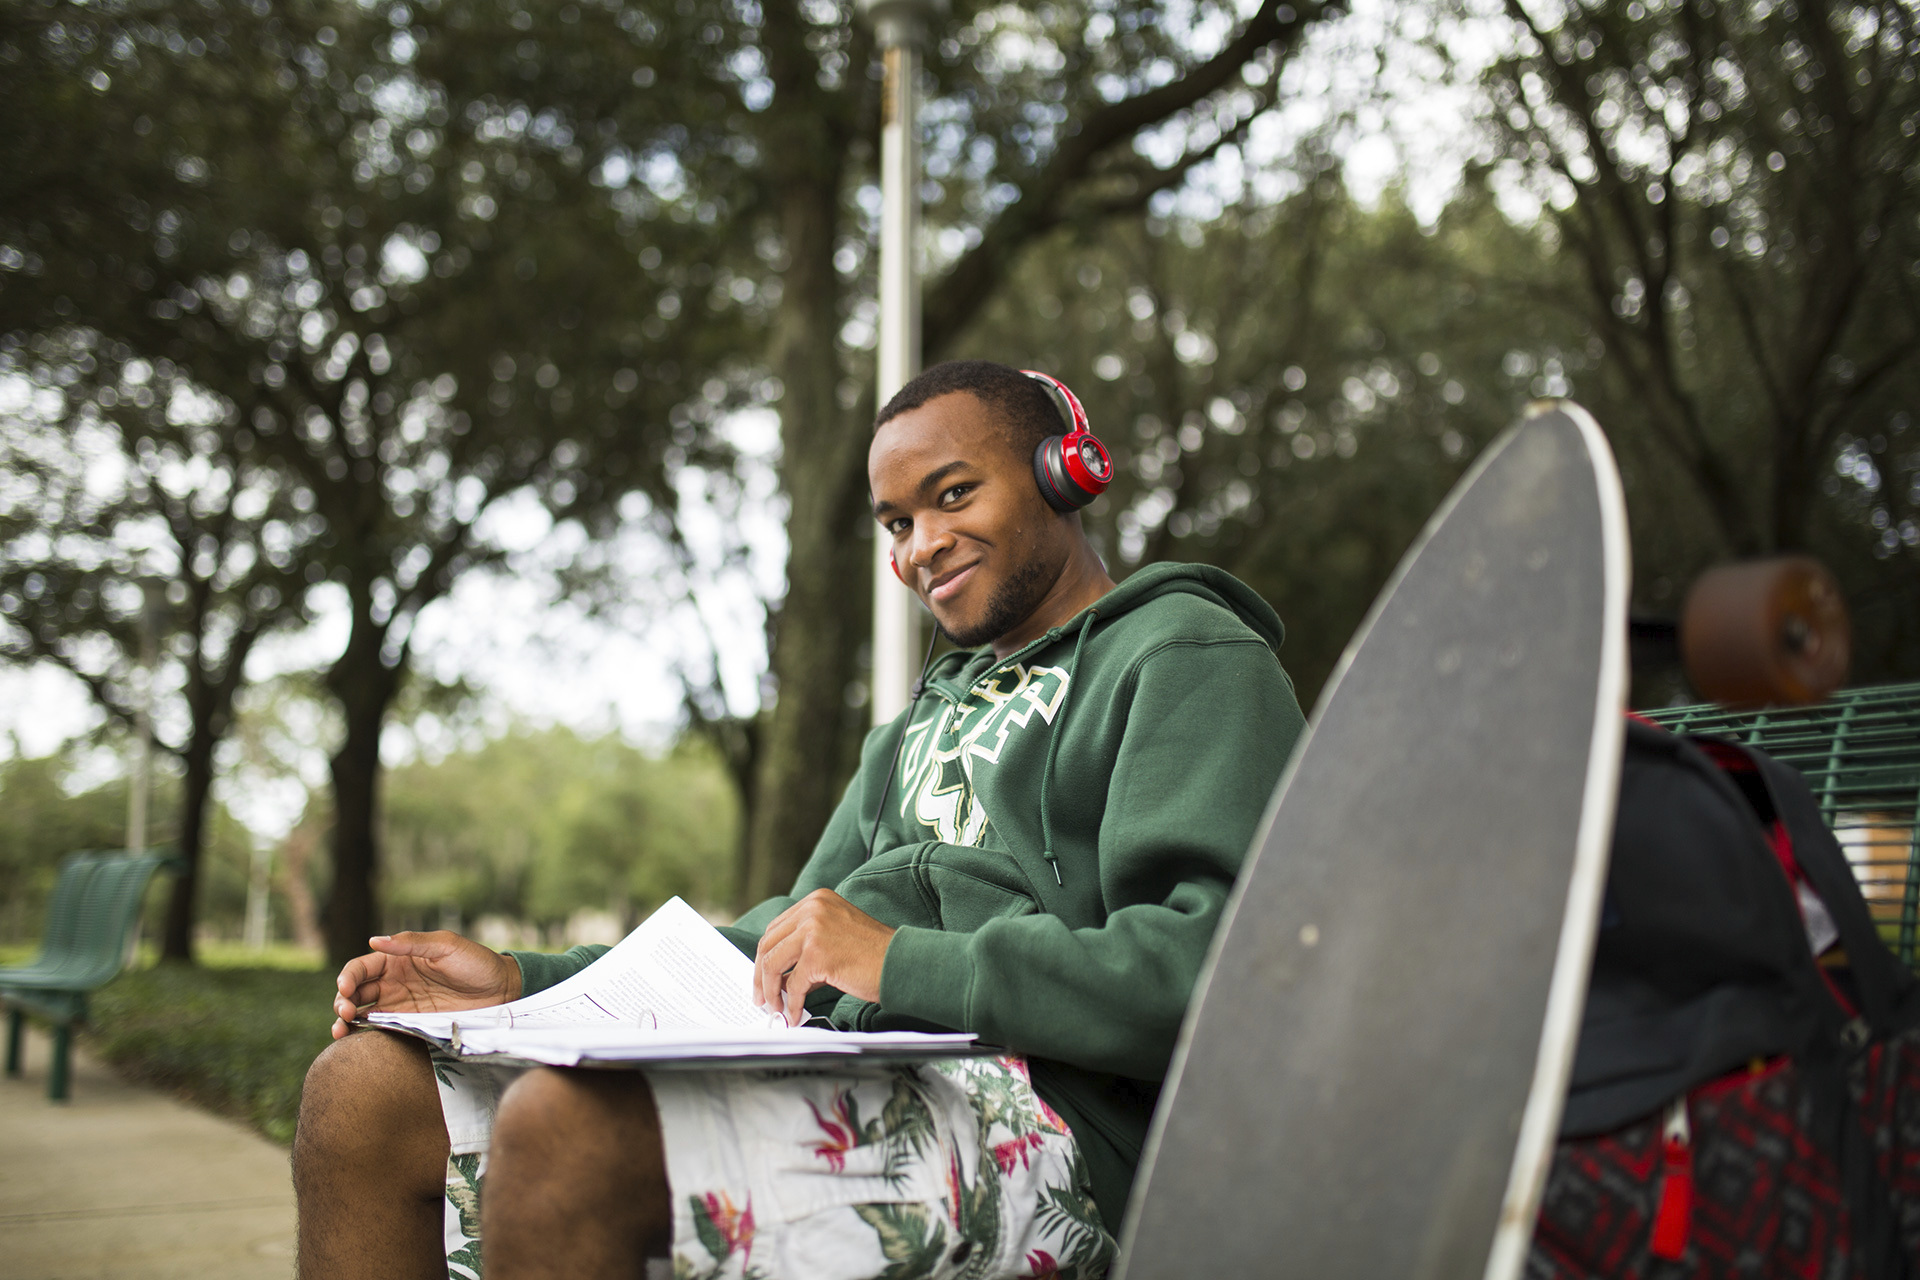 Male USF student researching scholarship opportunities outside on campus.